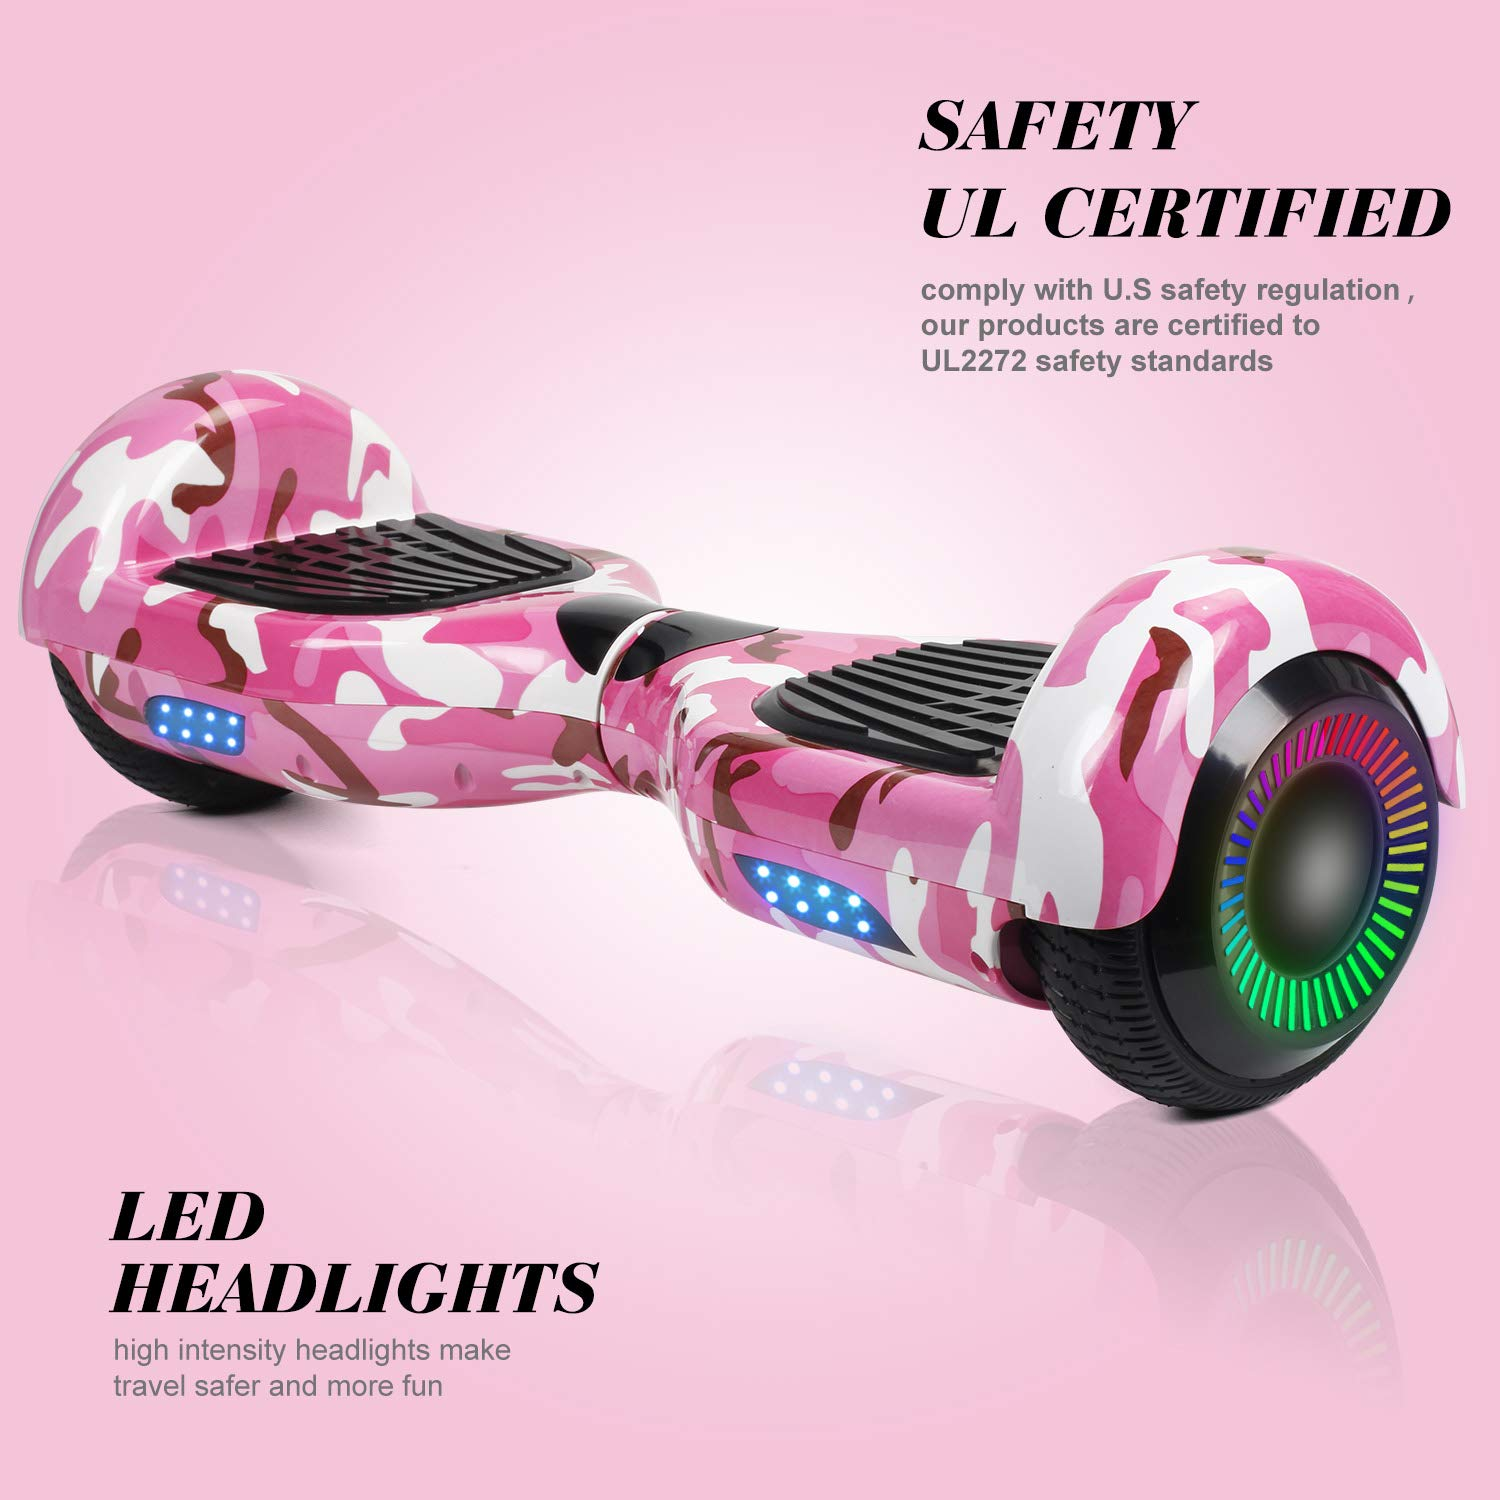 SWEETBUY Hoverboard Two-Wheel Self Balancing Electric Scooter UL 2272 Certified,6.5 inch Self Balancing Scooter with Carry Bag(Blue) by SWEETBUY (Image #3)